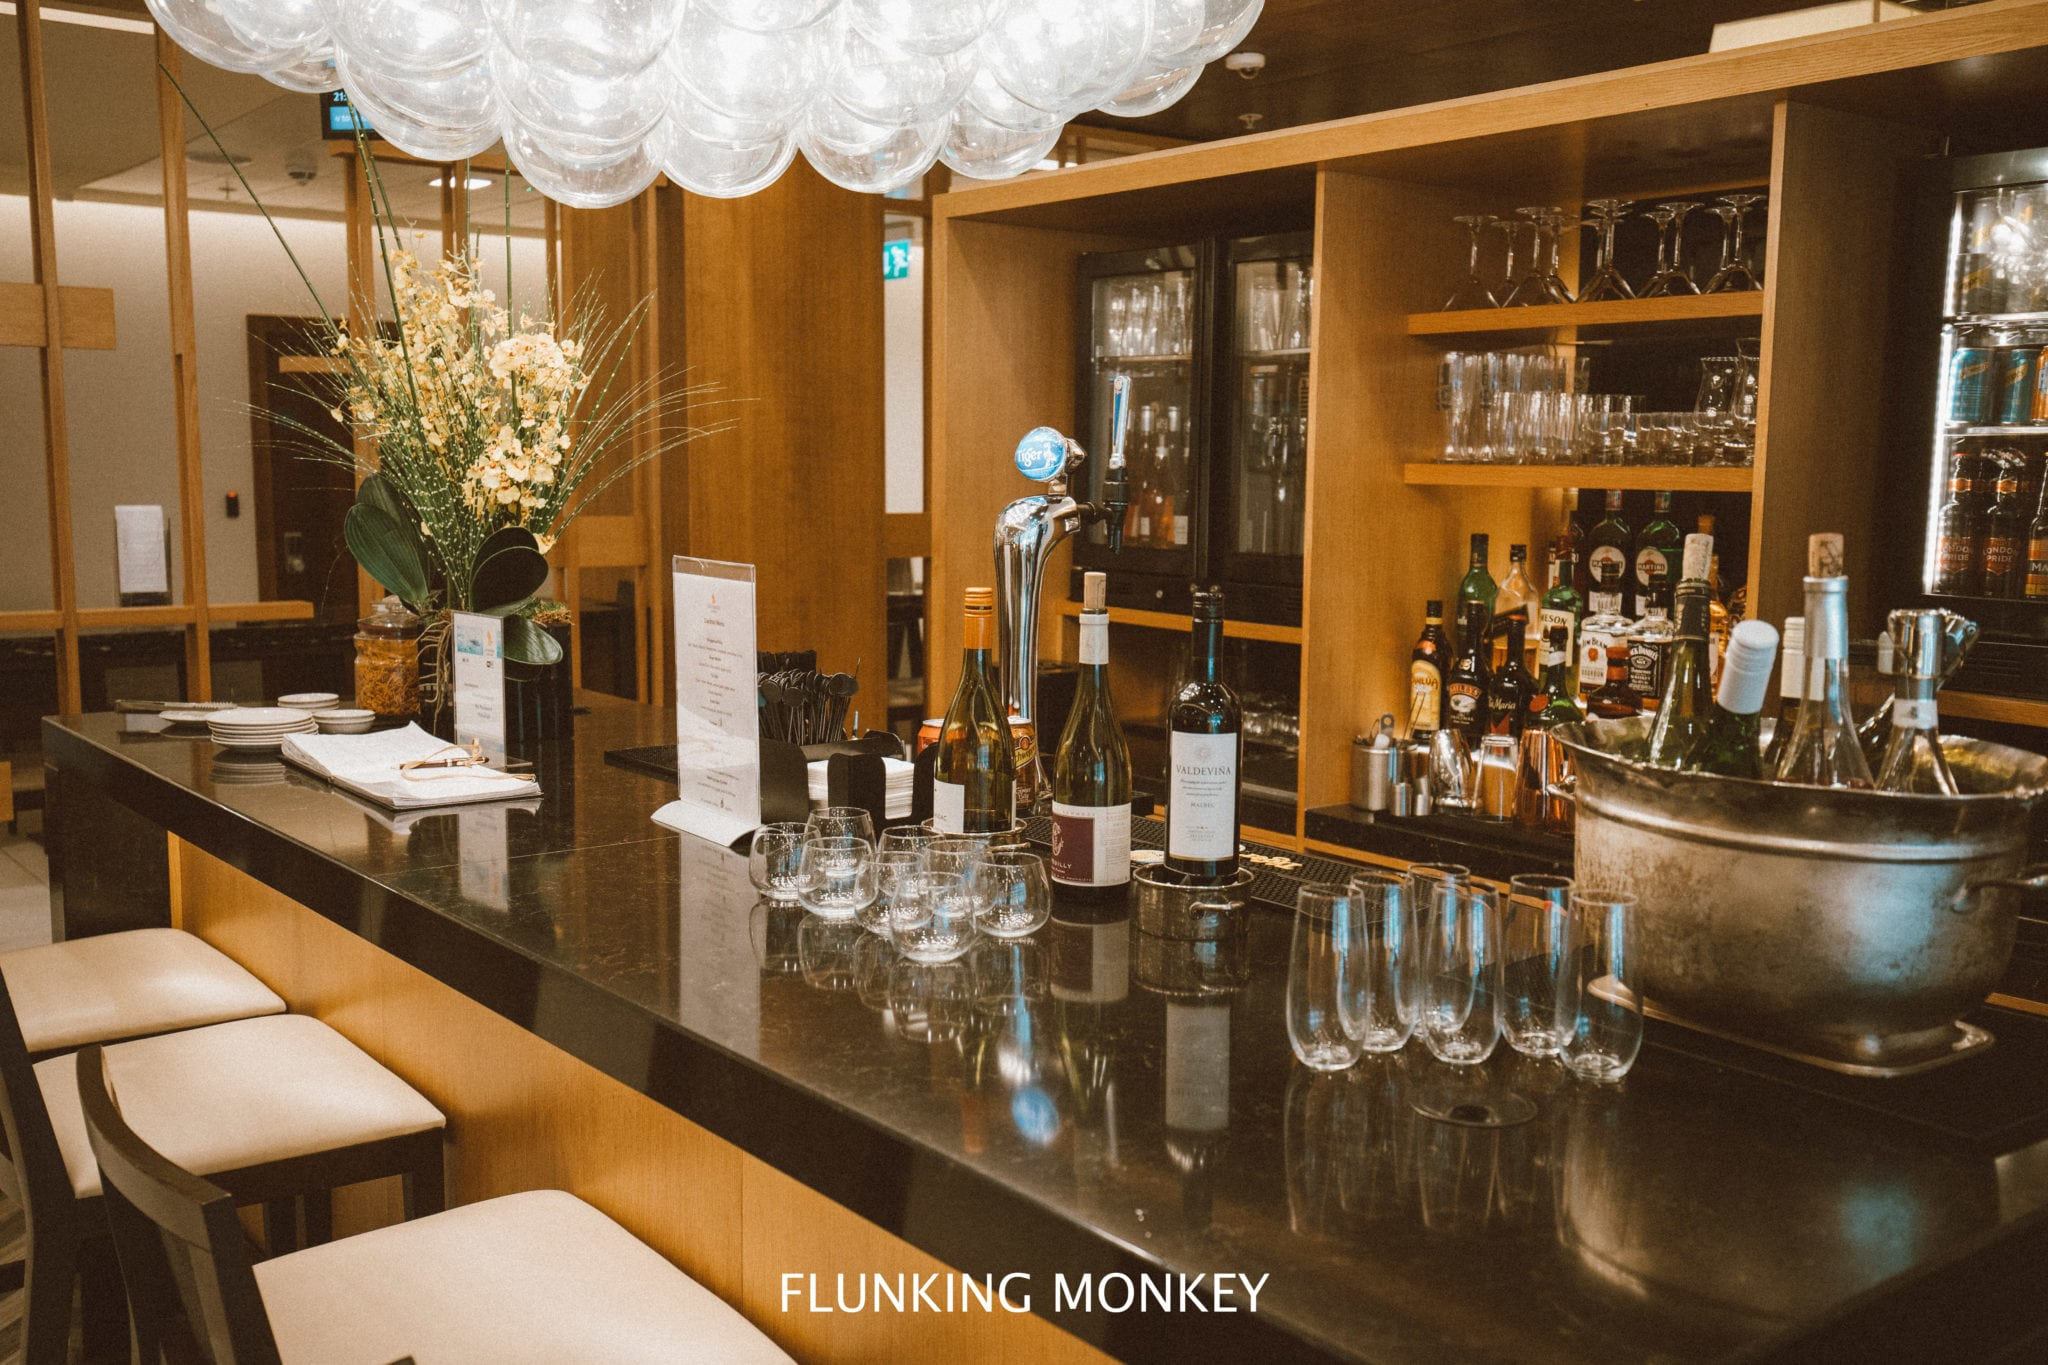 Air New Zealand - Flying With Airline Of The Year 2018 - Singapore Airlines Lounge LHR - Flunking Monkey